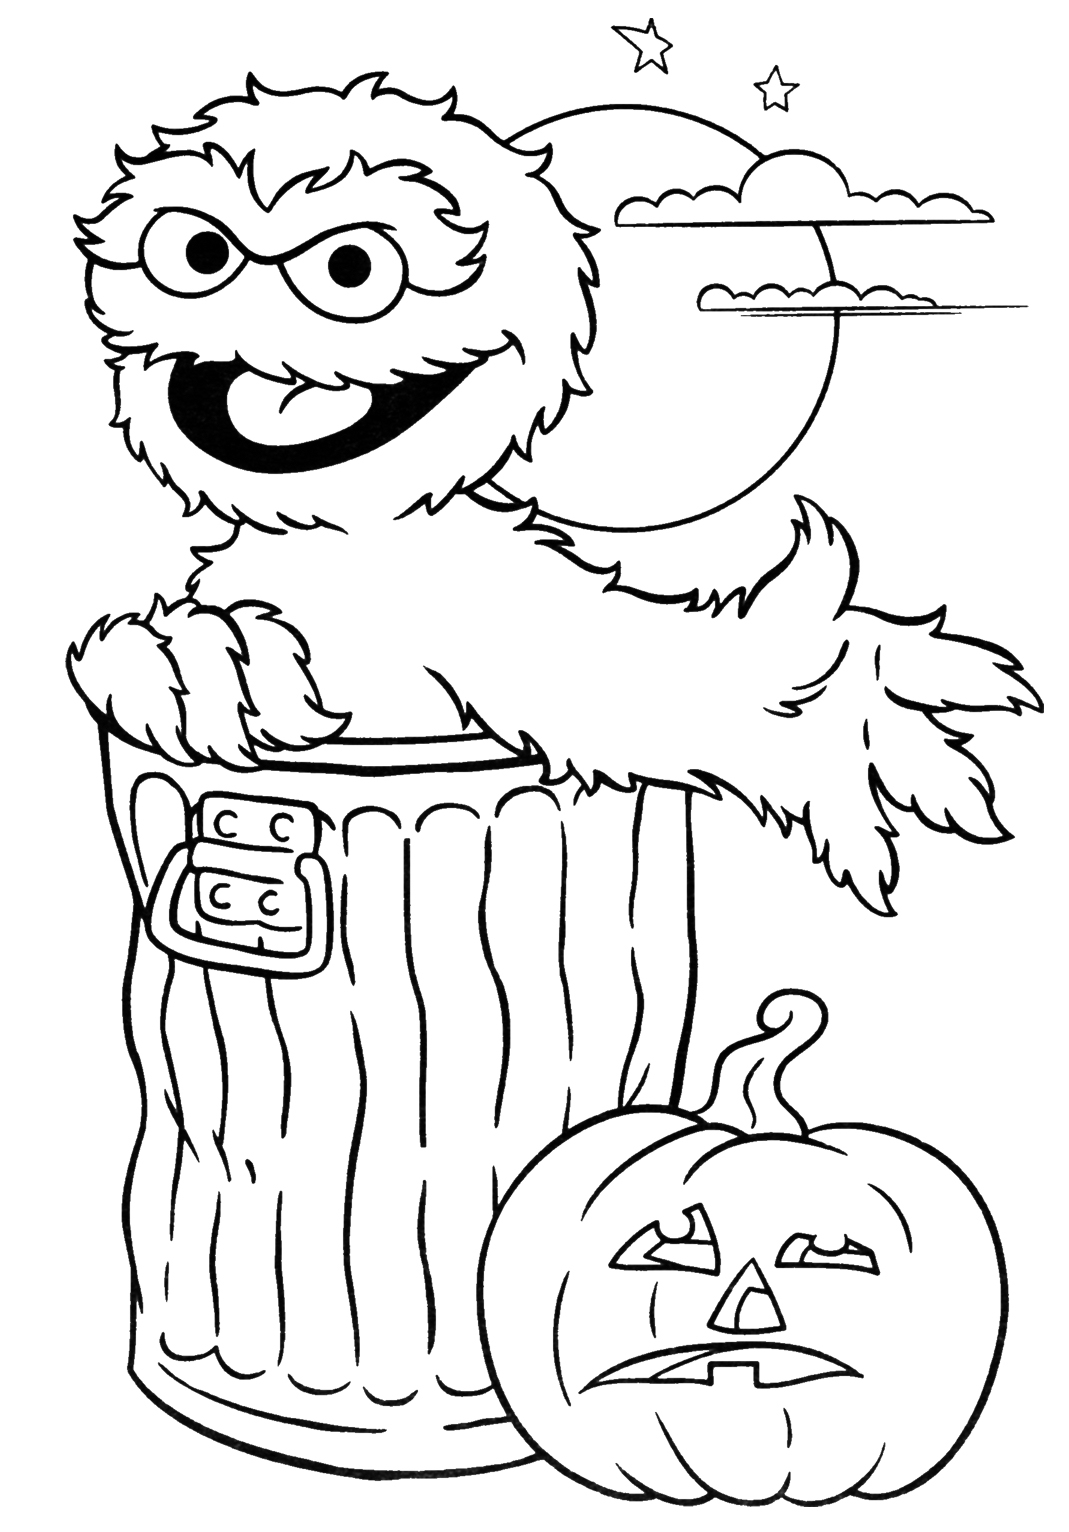 halloween-elmo-coloring-pages-to-print